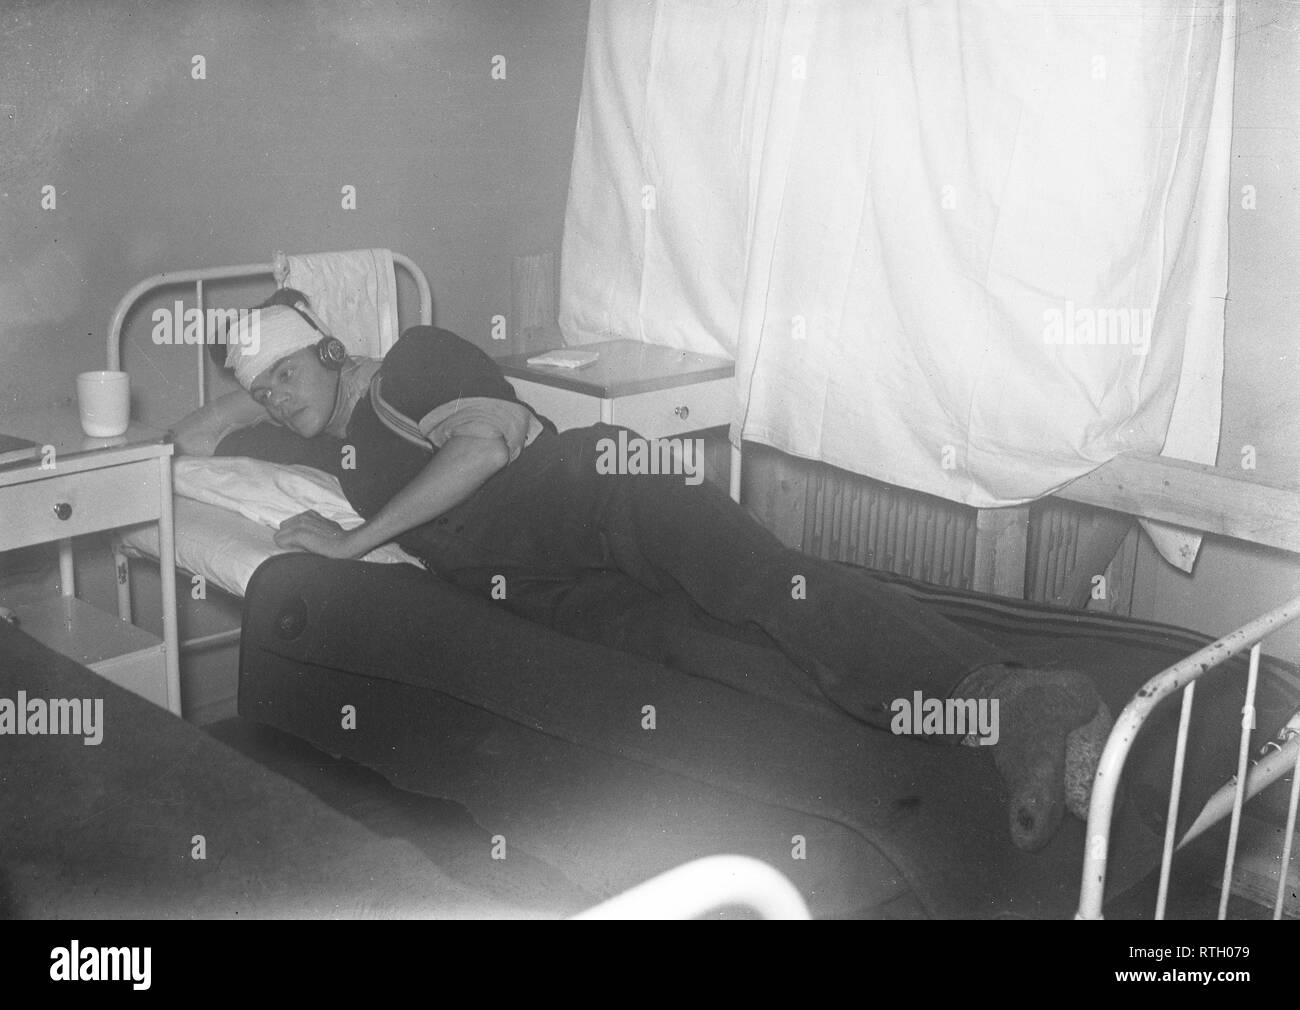 The Winter War. A military conflict between the Soviet union and Finland. It began with a Soviet invasion on november 1939 when Soviet infantery crossed the border on the Karelian Isthmus. About 9500 Swedish volunteer soldiers participated in the war. According to the caption of the photo, this is the first wounded Finnish soldier at a hospital in Viborg. December 1939. Photo Kristoffersson ref 97-5. - Stock Image